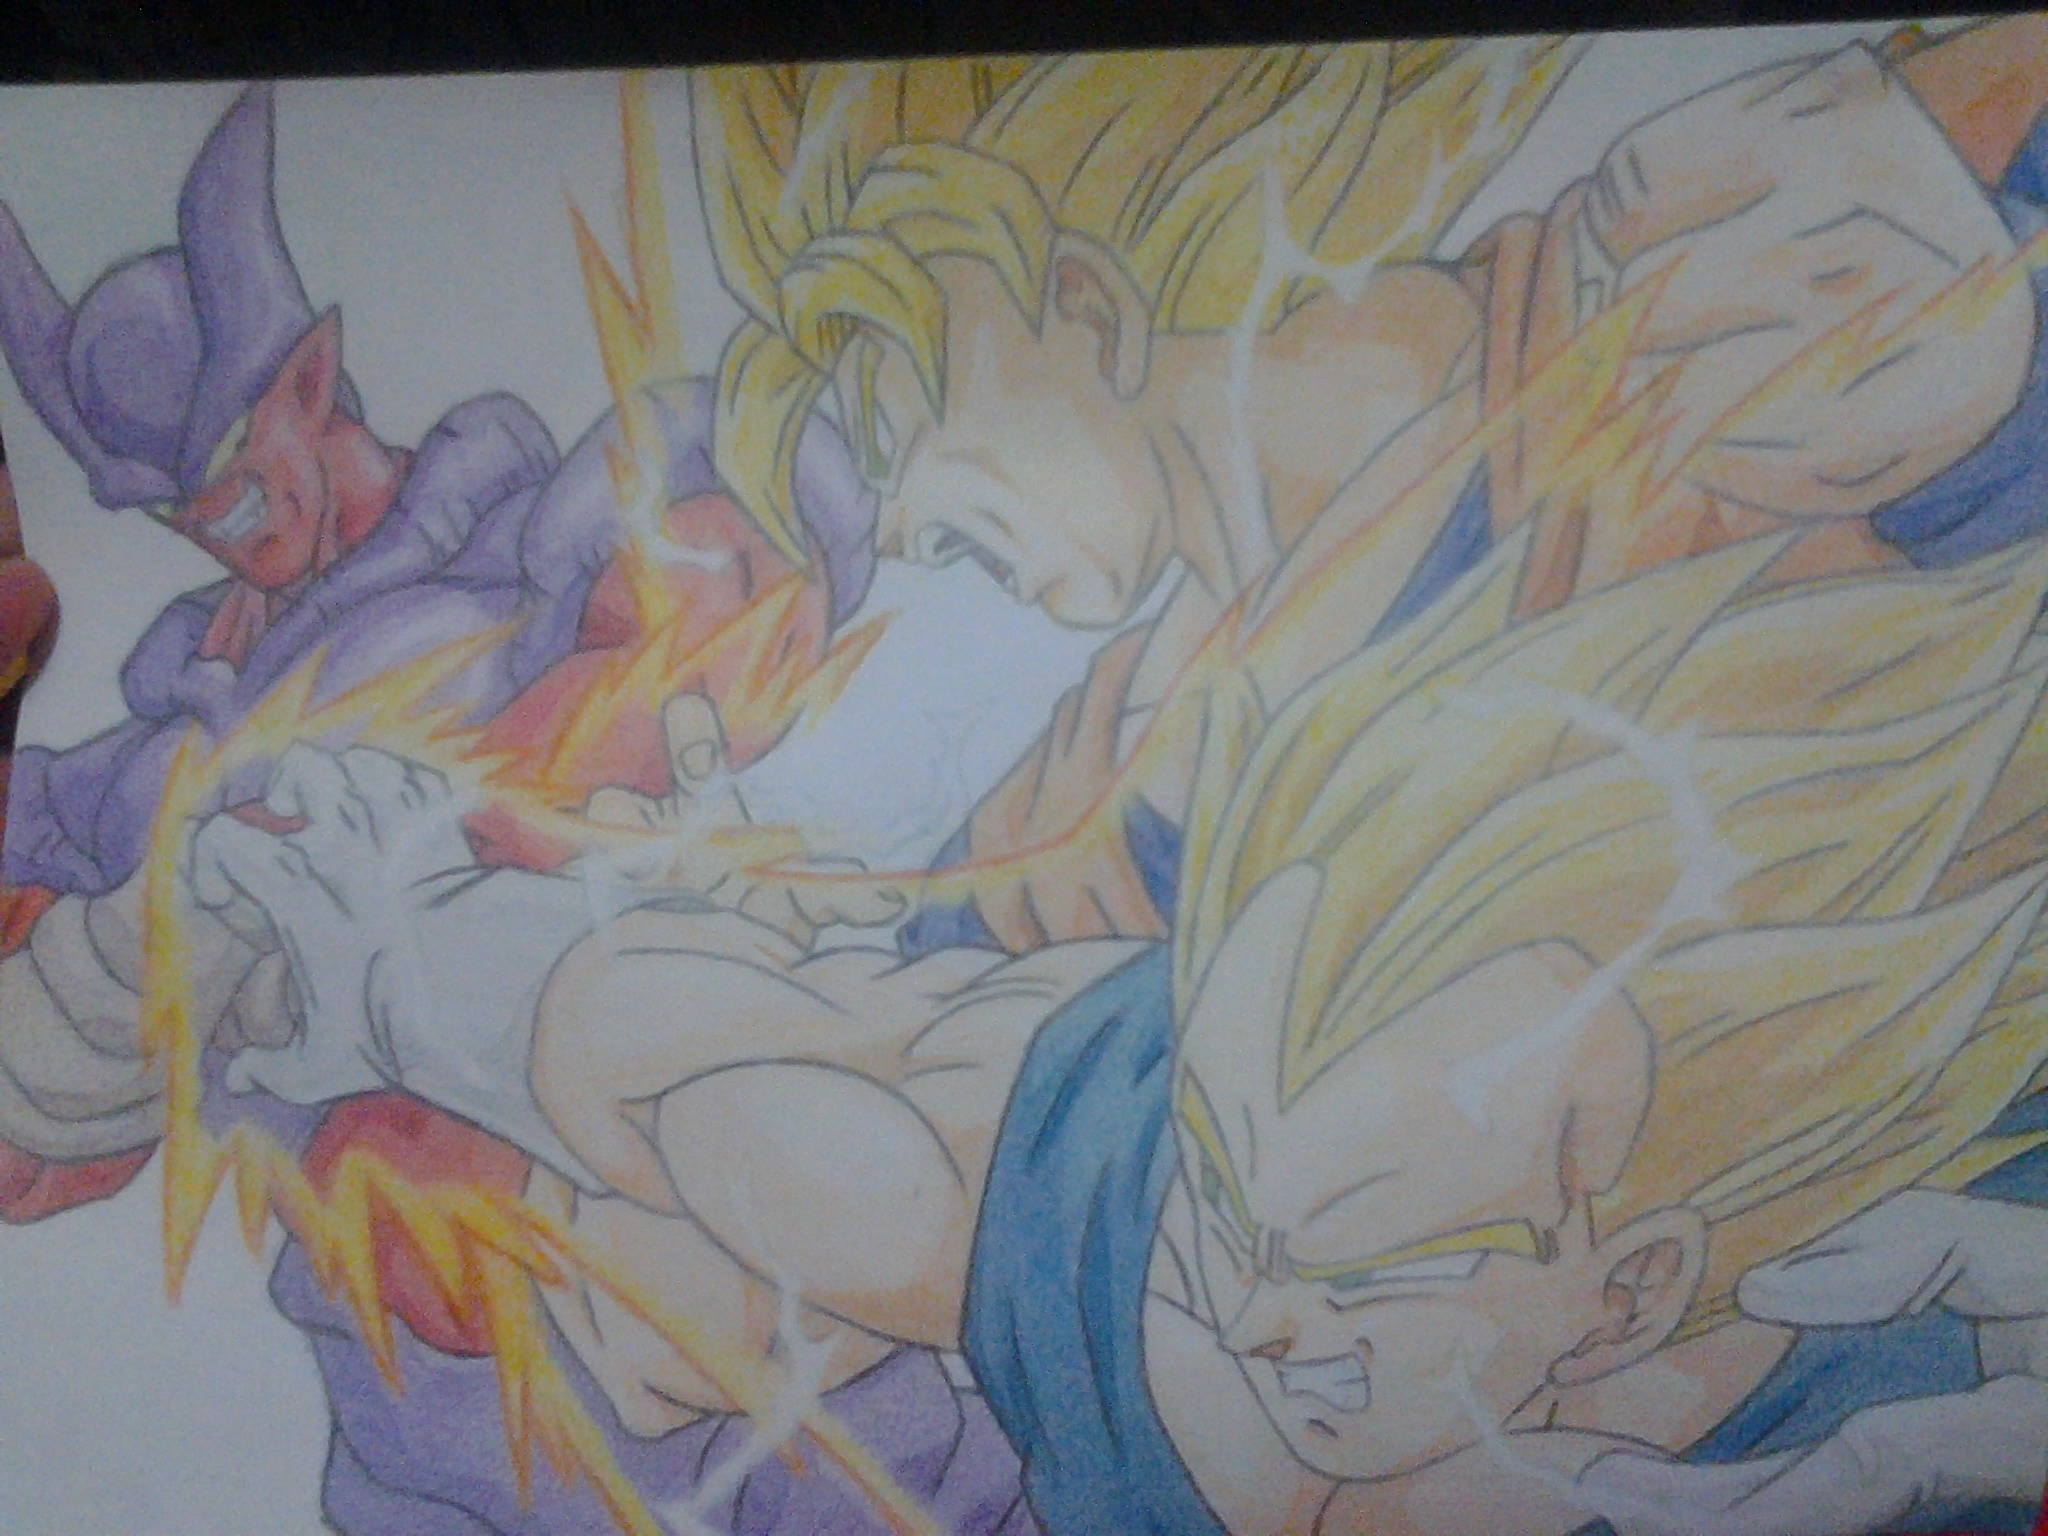 poster de dragon ball z